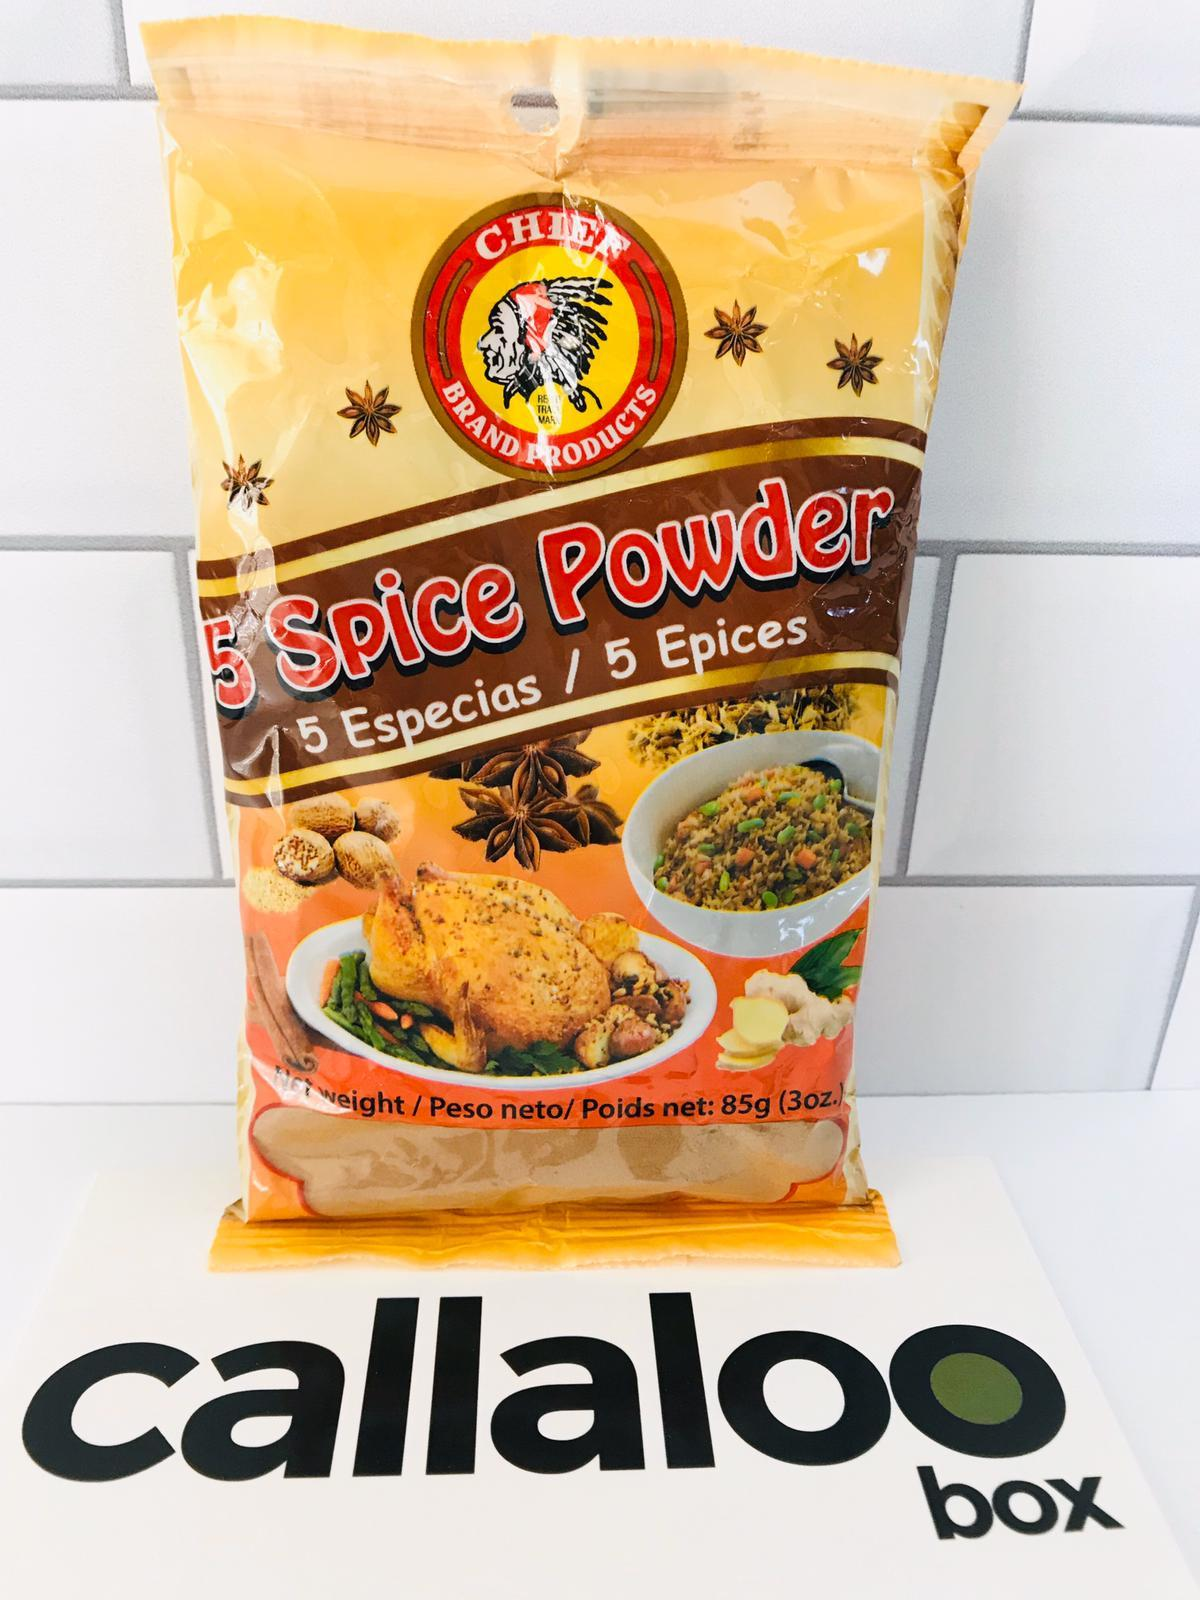 Callaloo Box Chief Chinese 5 spice seasoning Trinidad and Tobago Subscription Box Caribbean Online Grocery